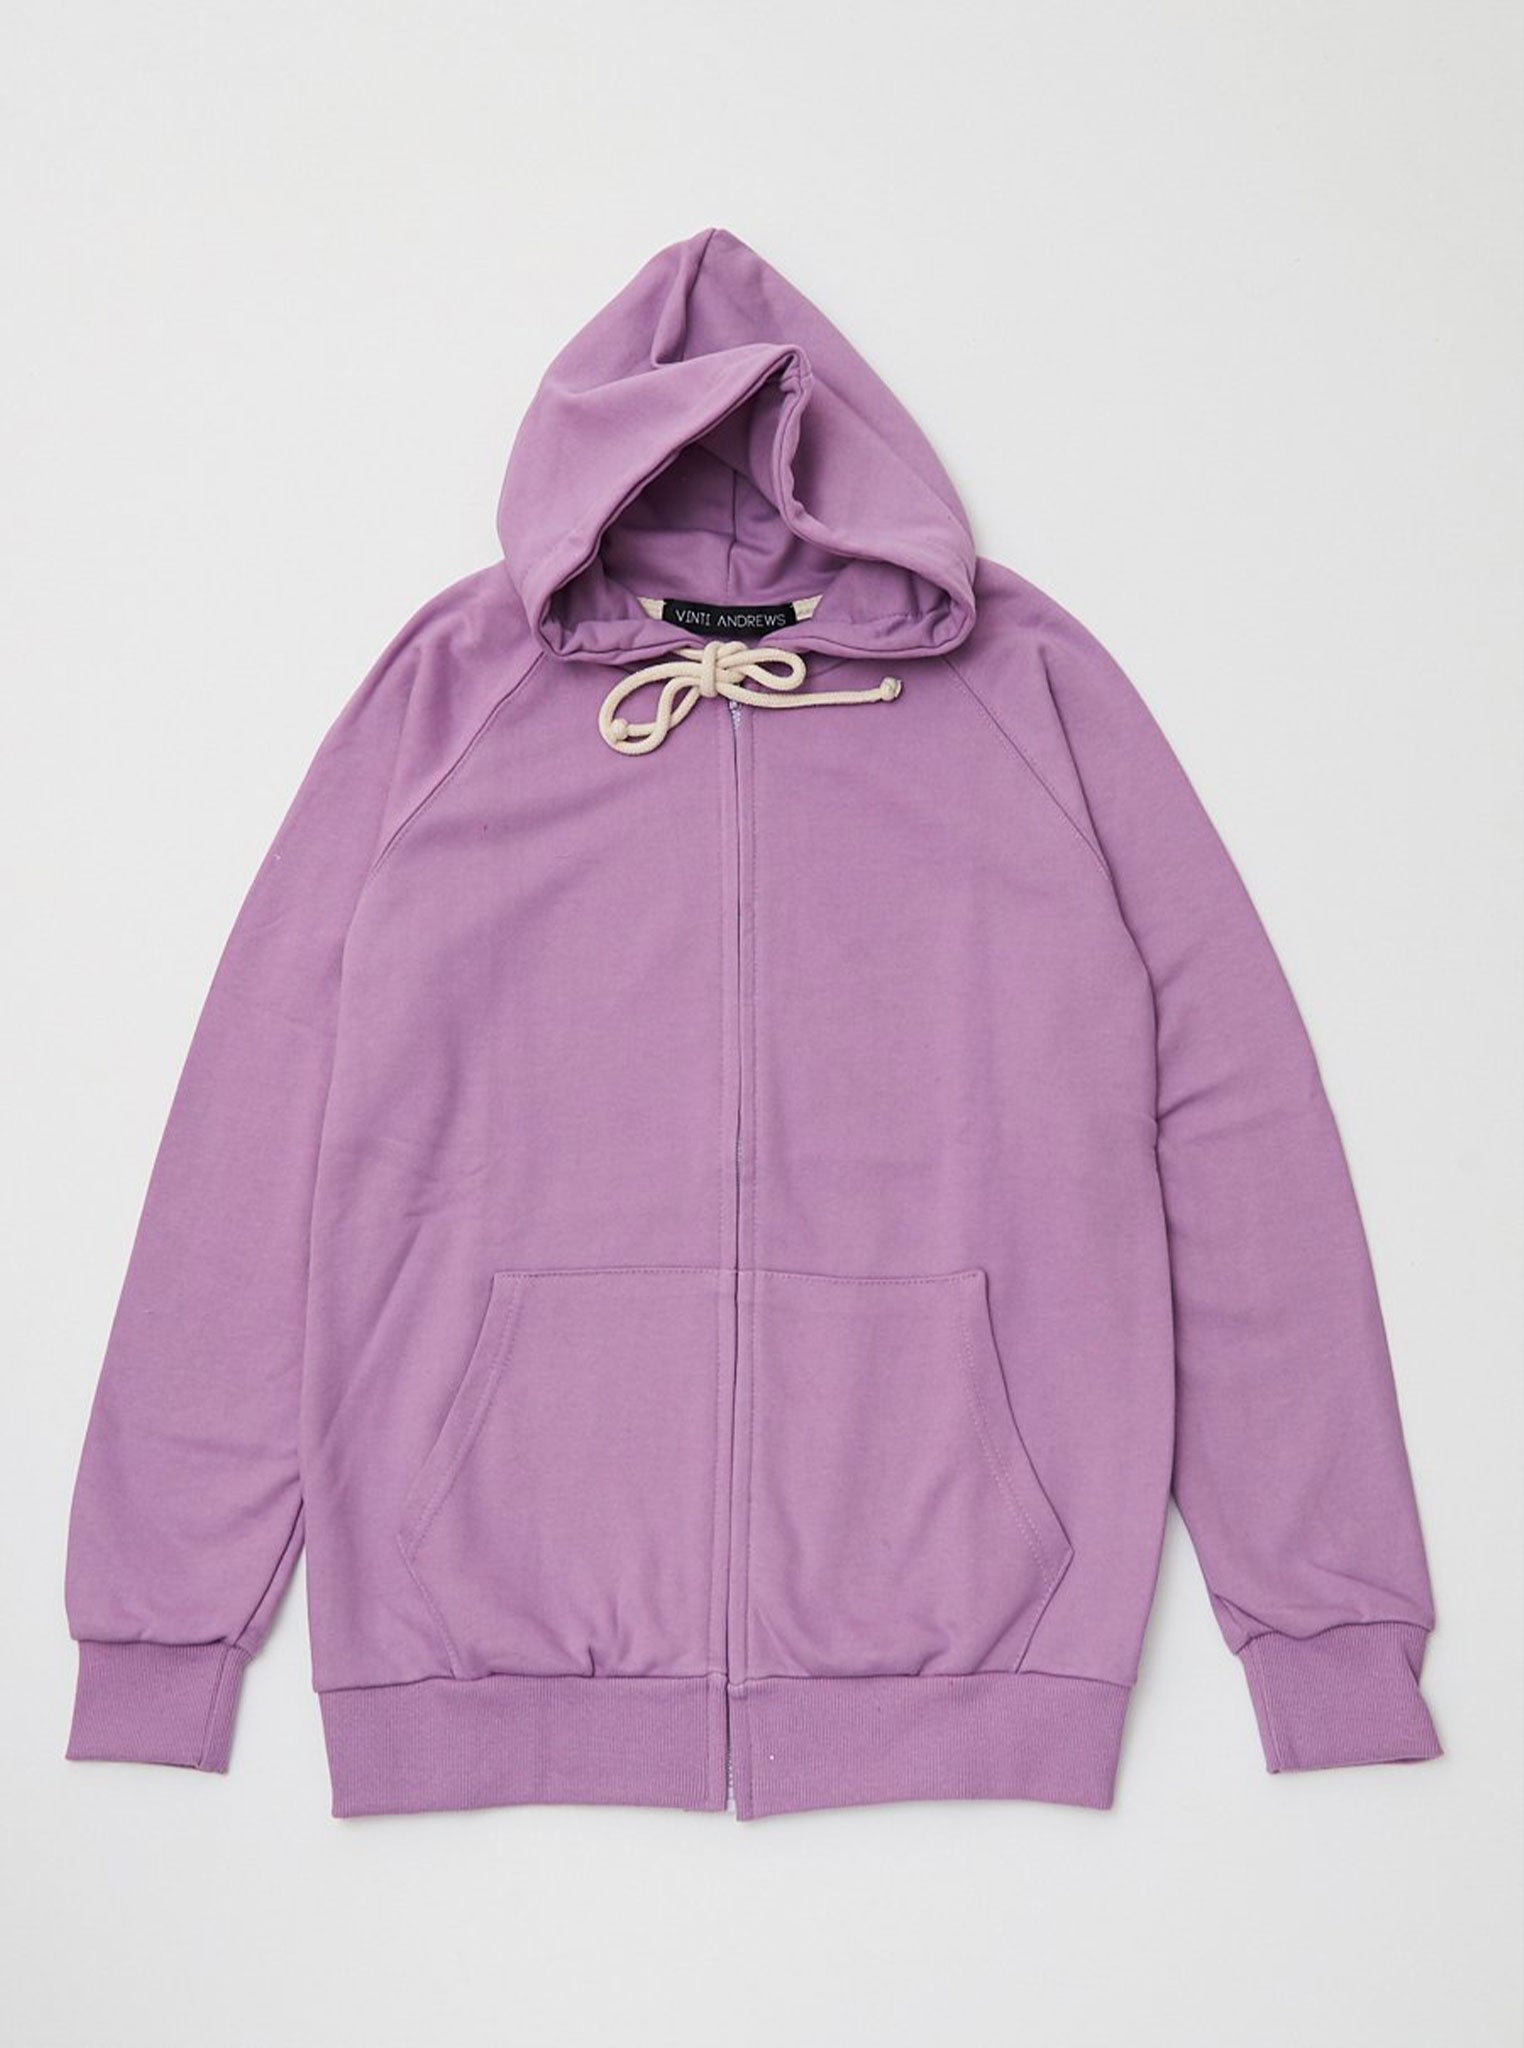 Vinti Andrews Colour Zip Up Hoody Purple